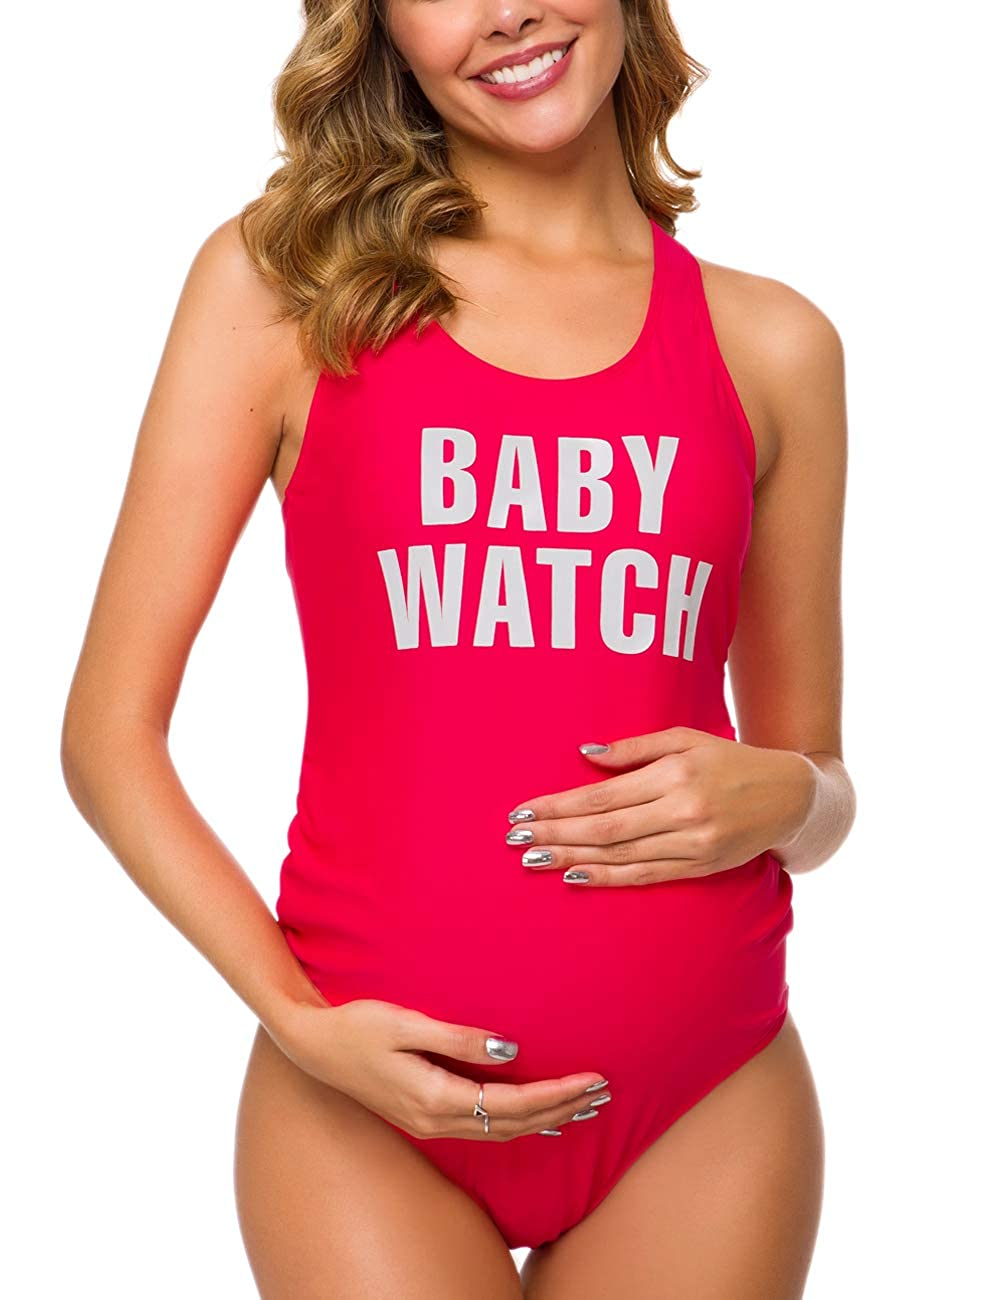 Ziola Women One Piece Letters Printed Maternity Swimsuit Backless Tankini Suns Out Bumps Out Monokini